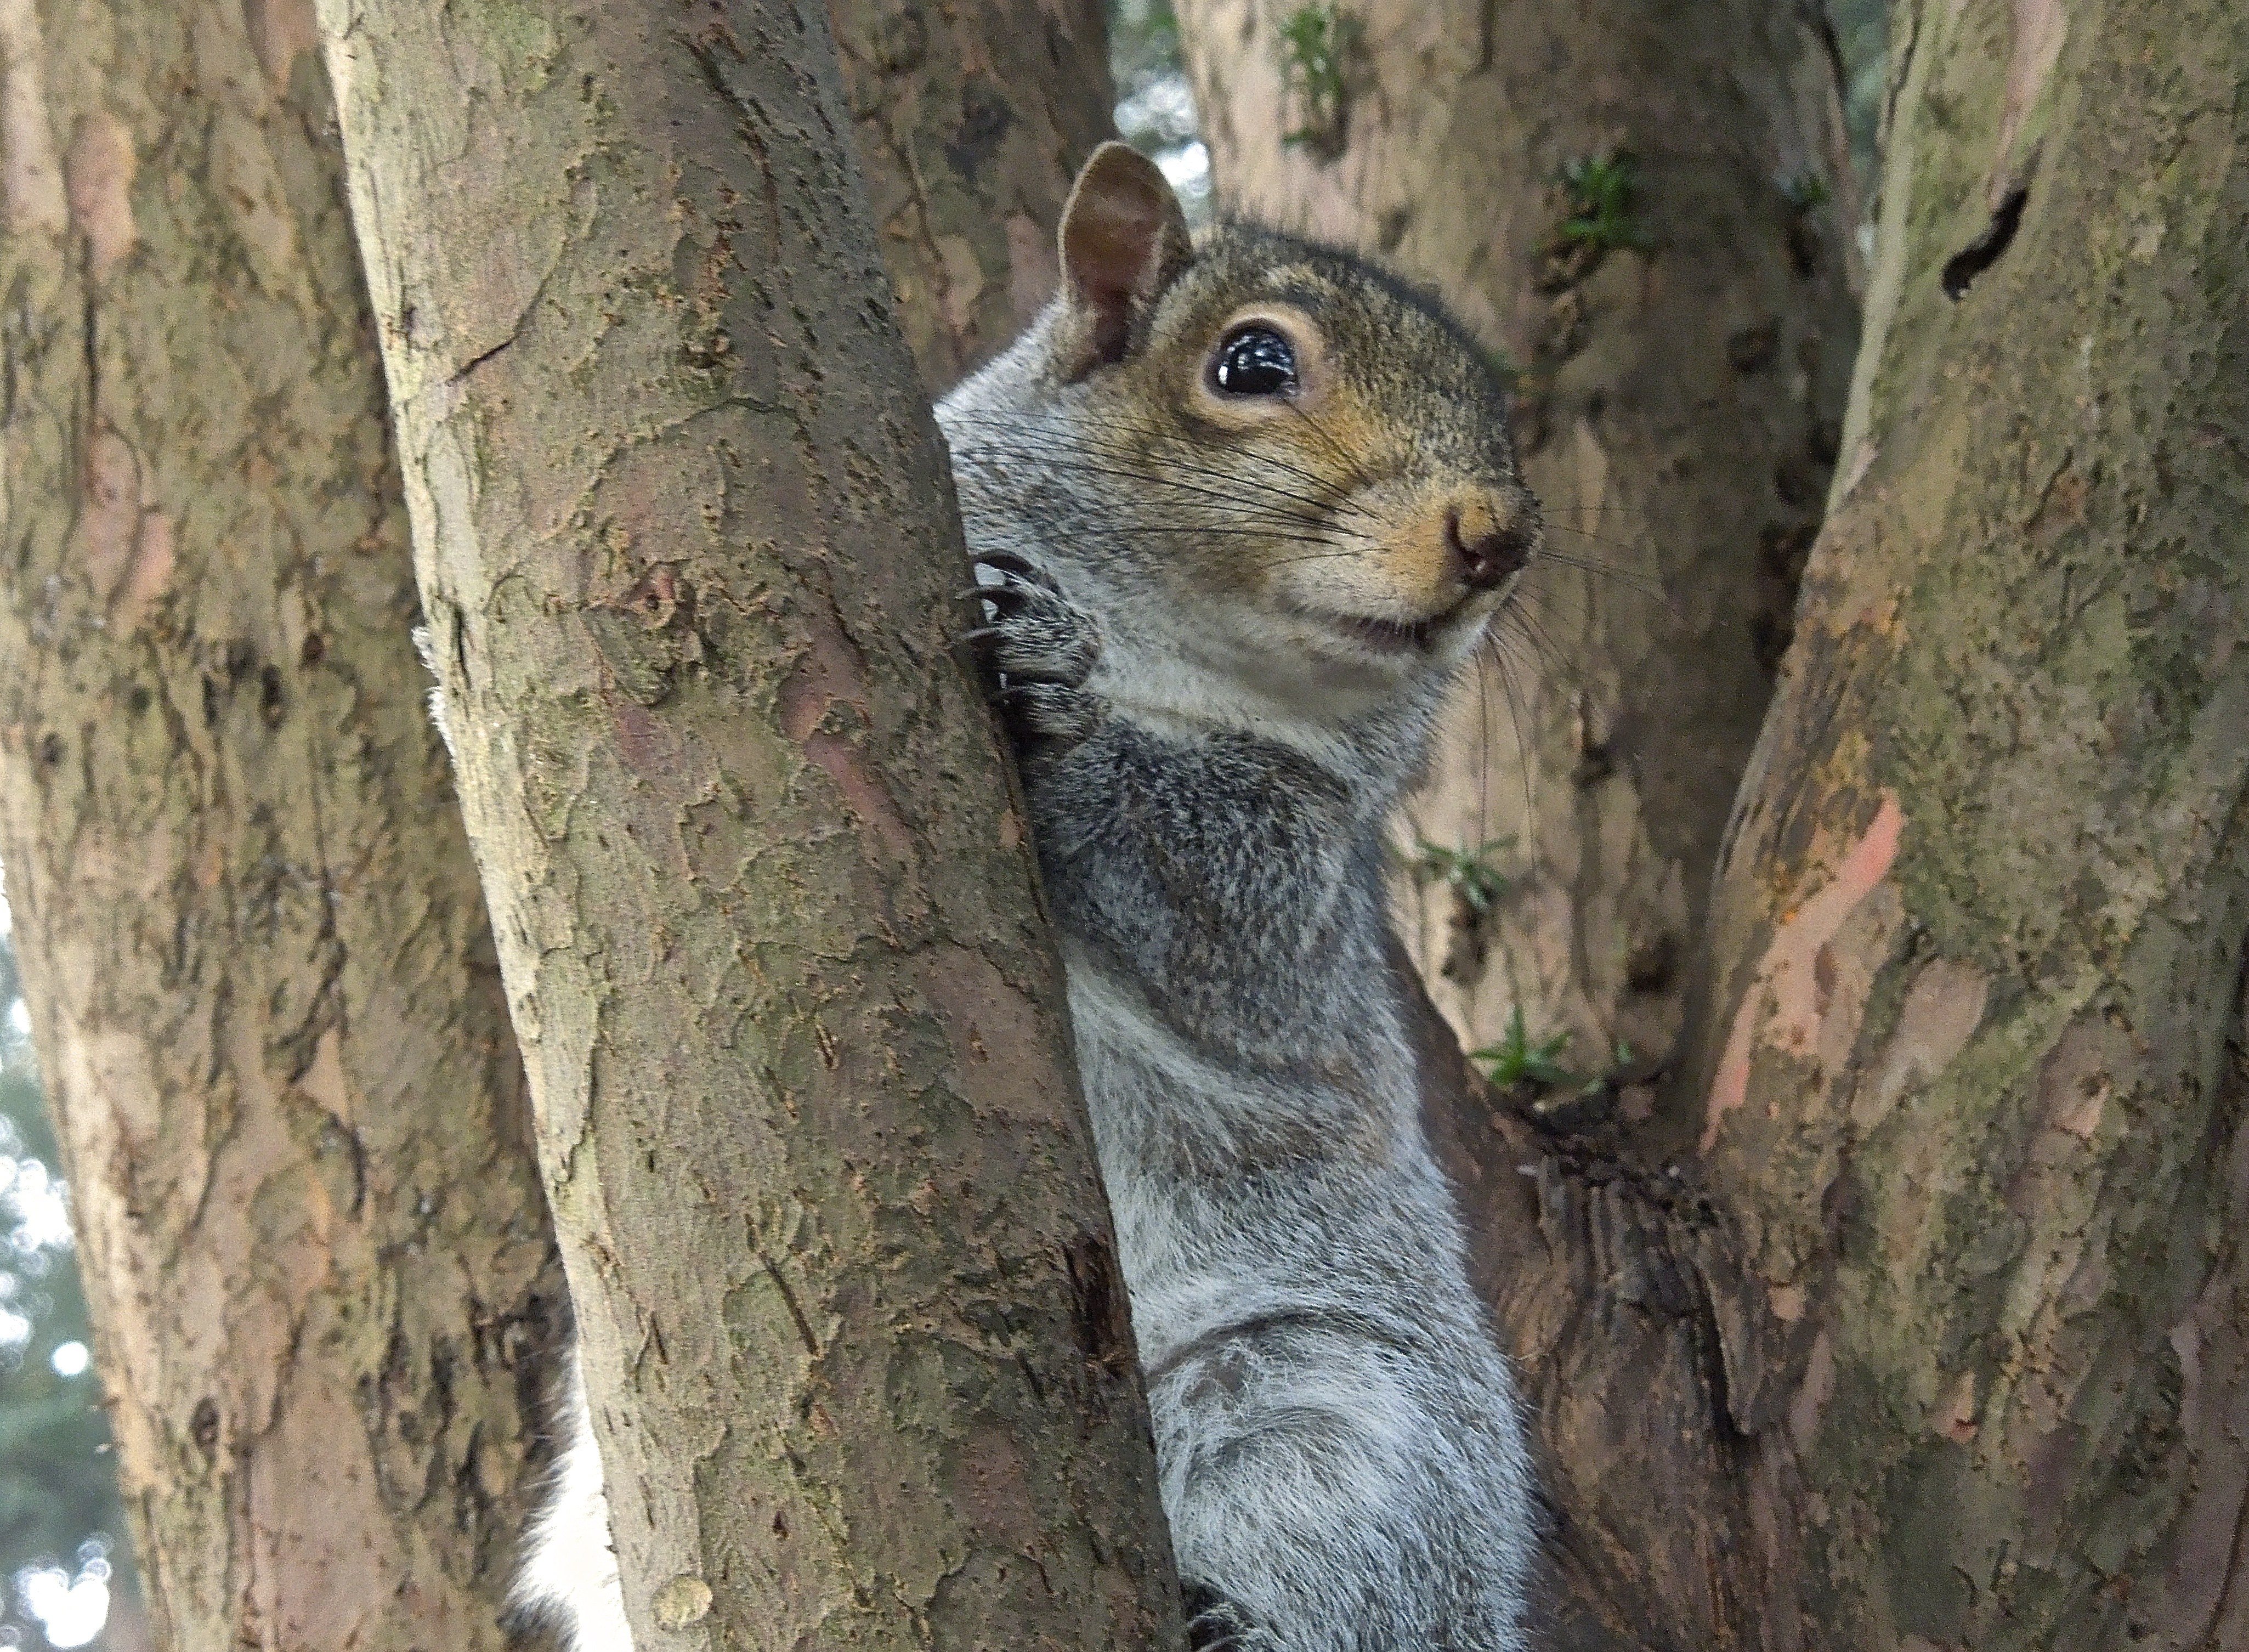 University squirrel. Photo taken by Brigitte at the beginning of the year.